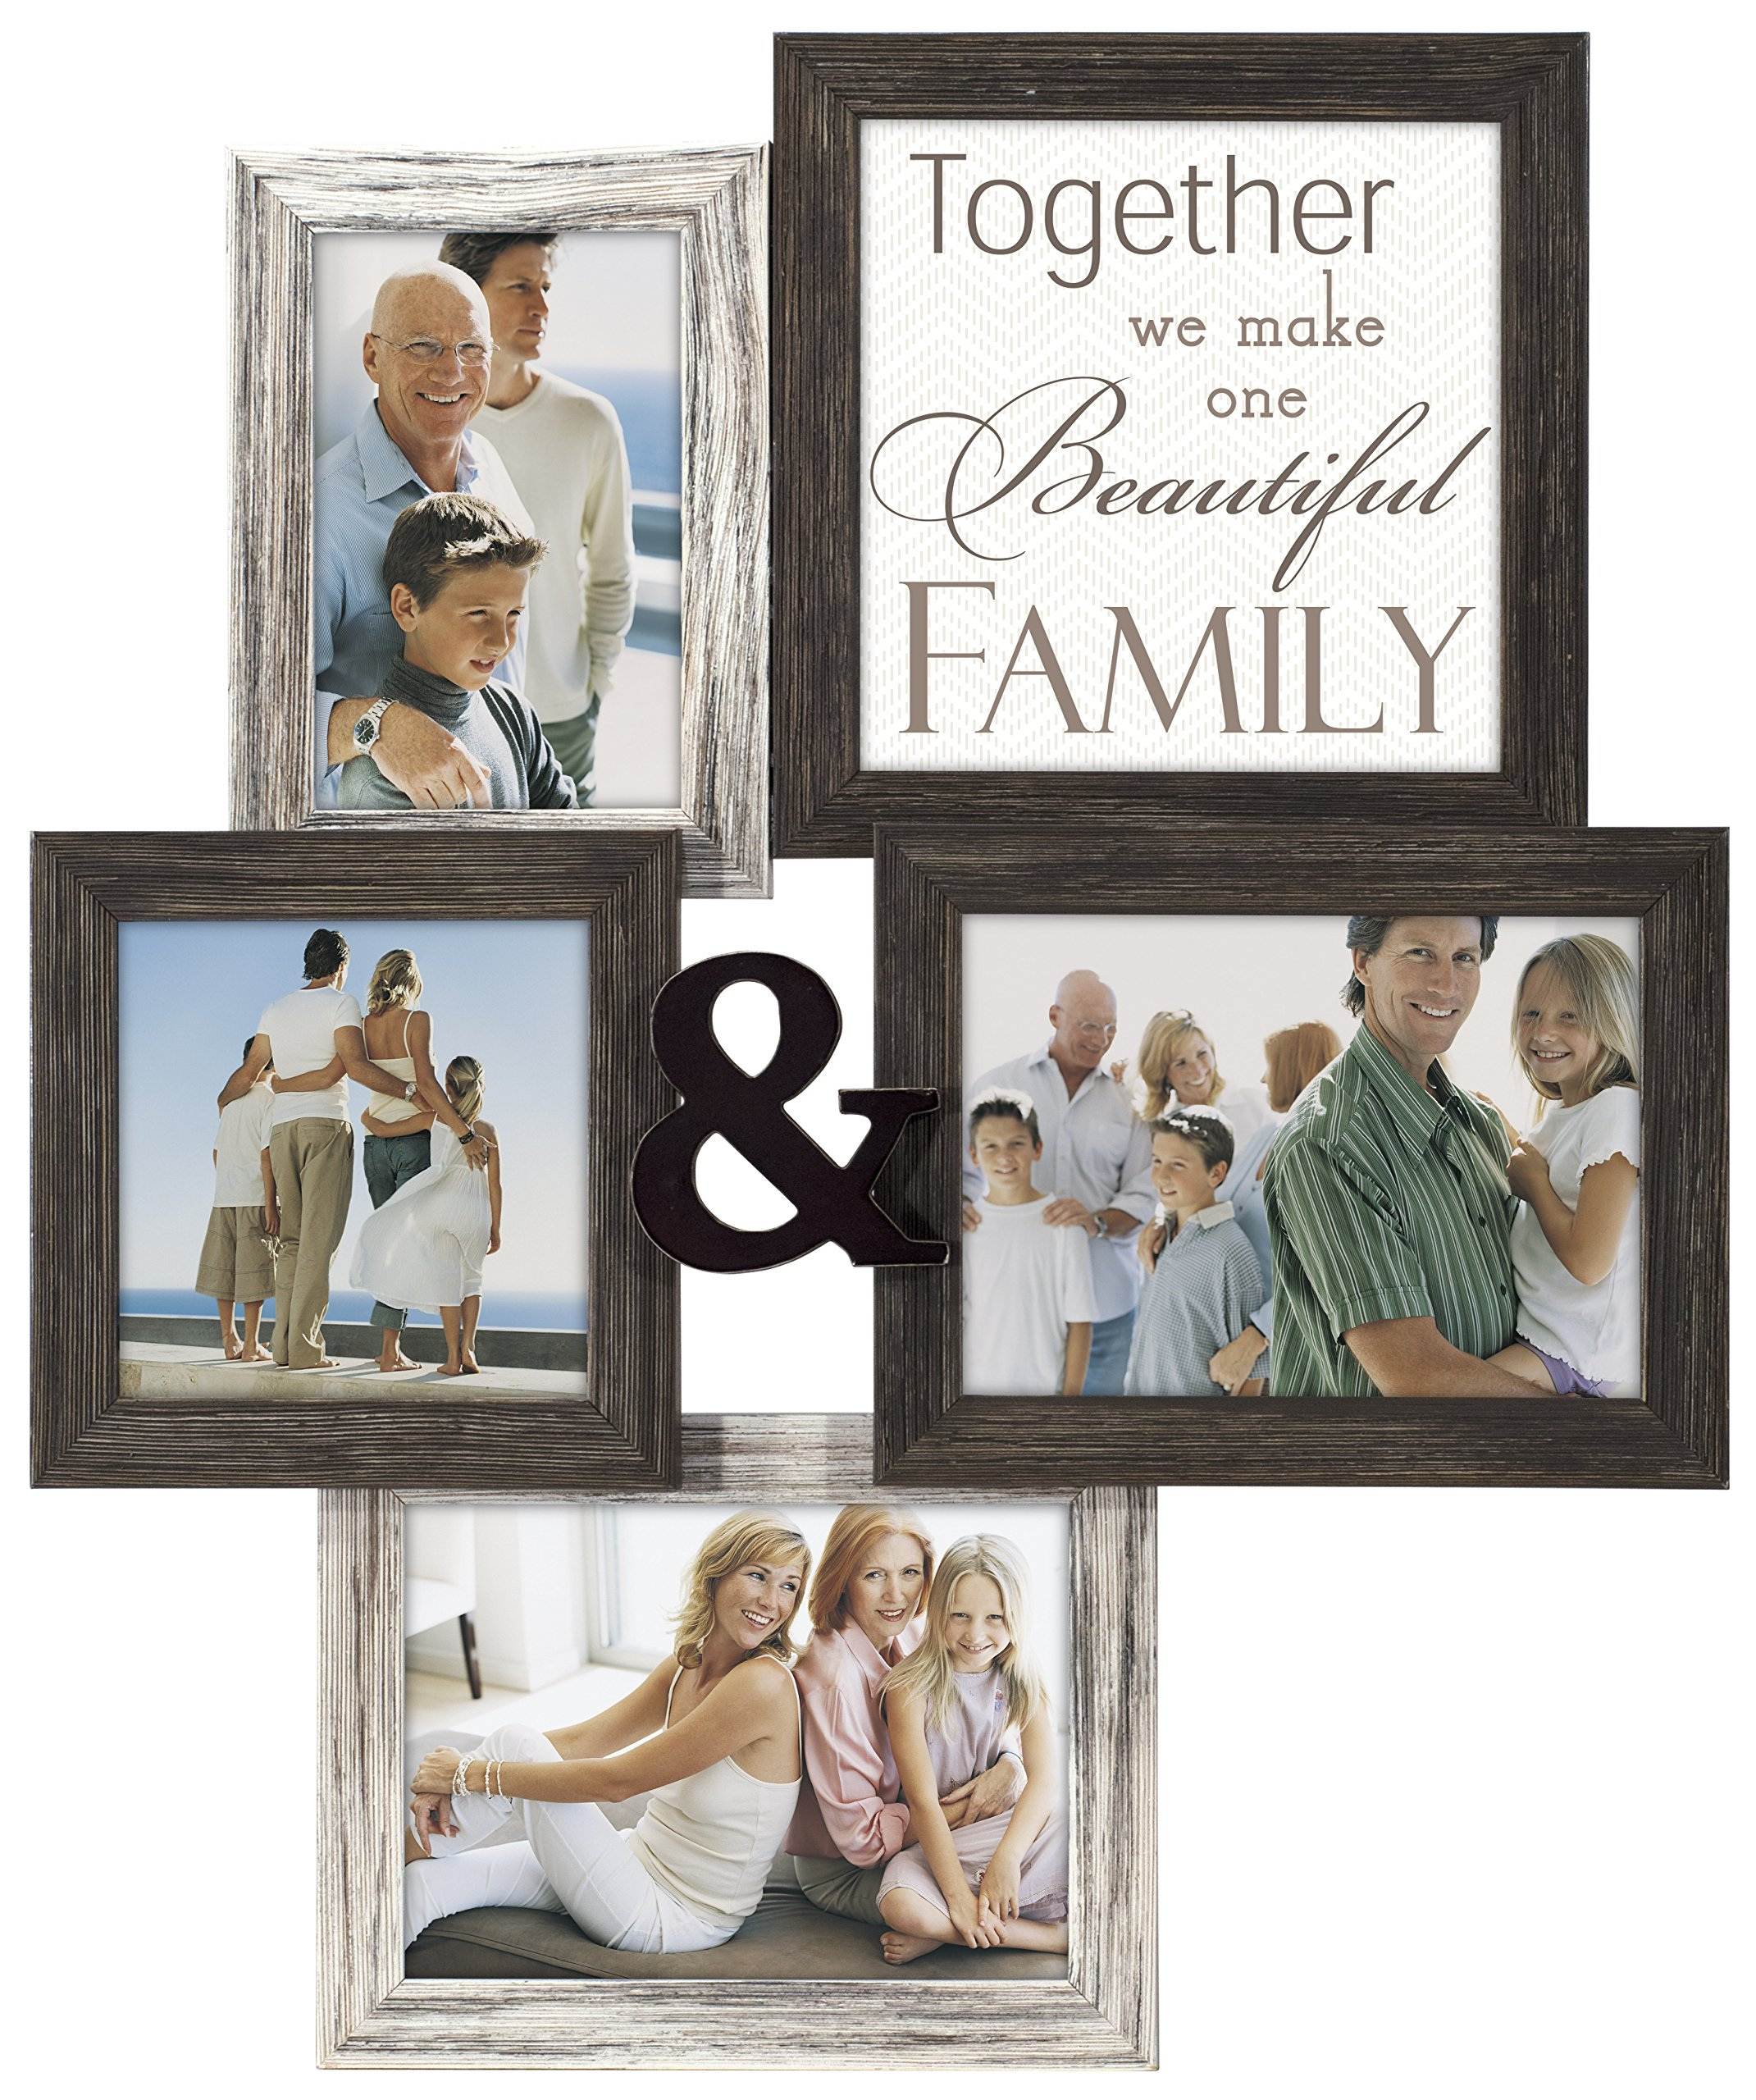 Malden International Designs Wall Sentiments Together We Make One Beautiful Family with Ampersand Collage Frame, 4 Option, 1-4x6 & 1-5x5 & 2-5x7, Black by Malden International Designs